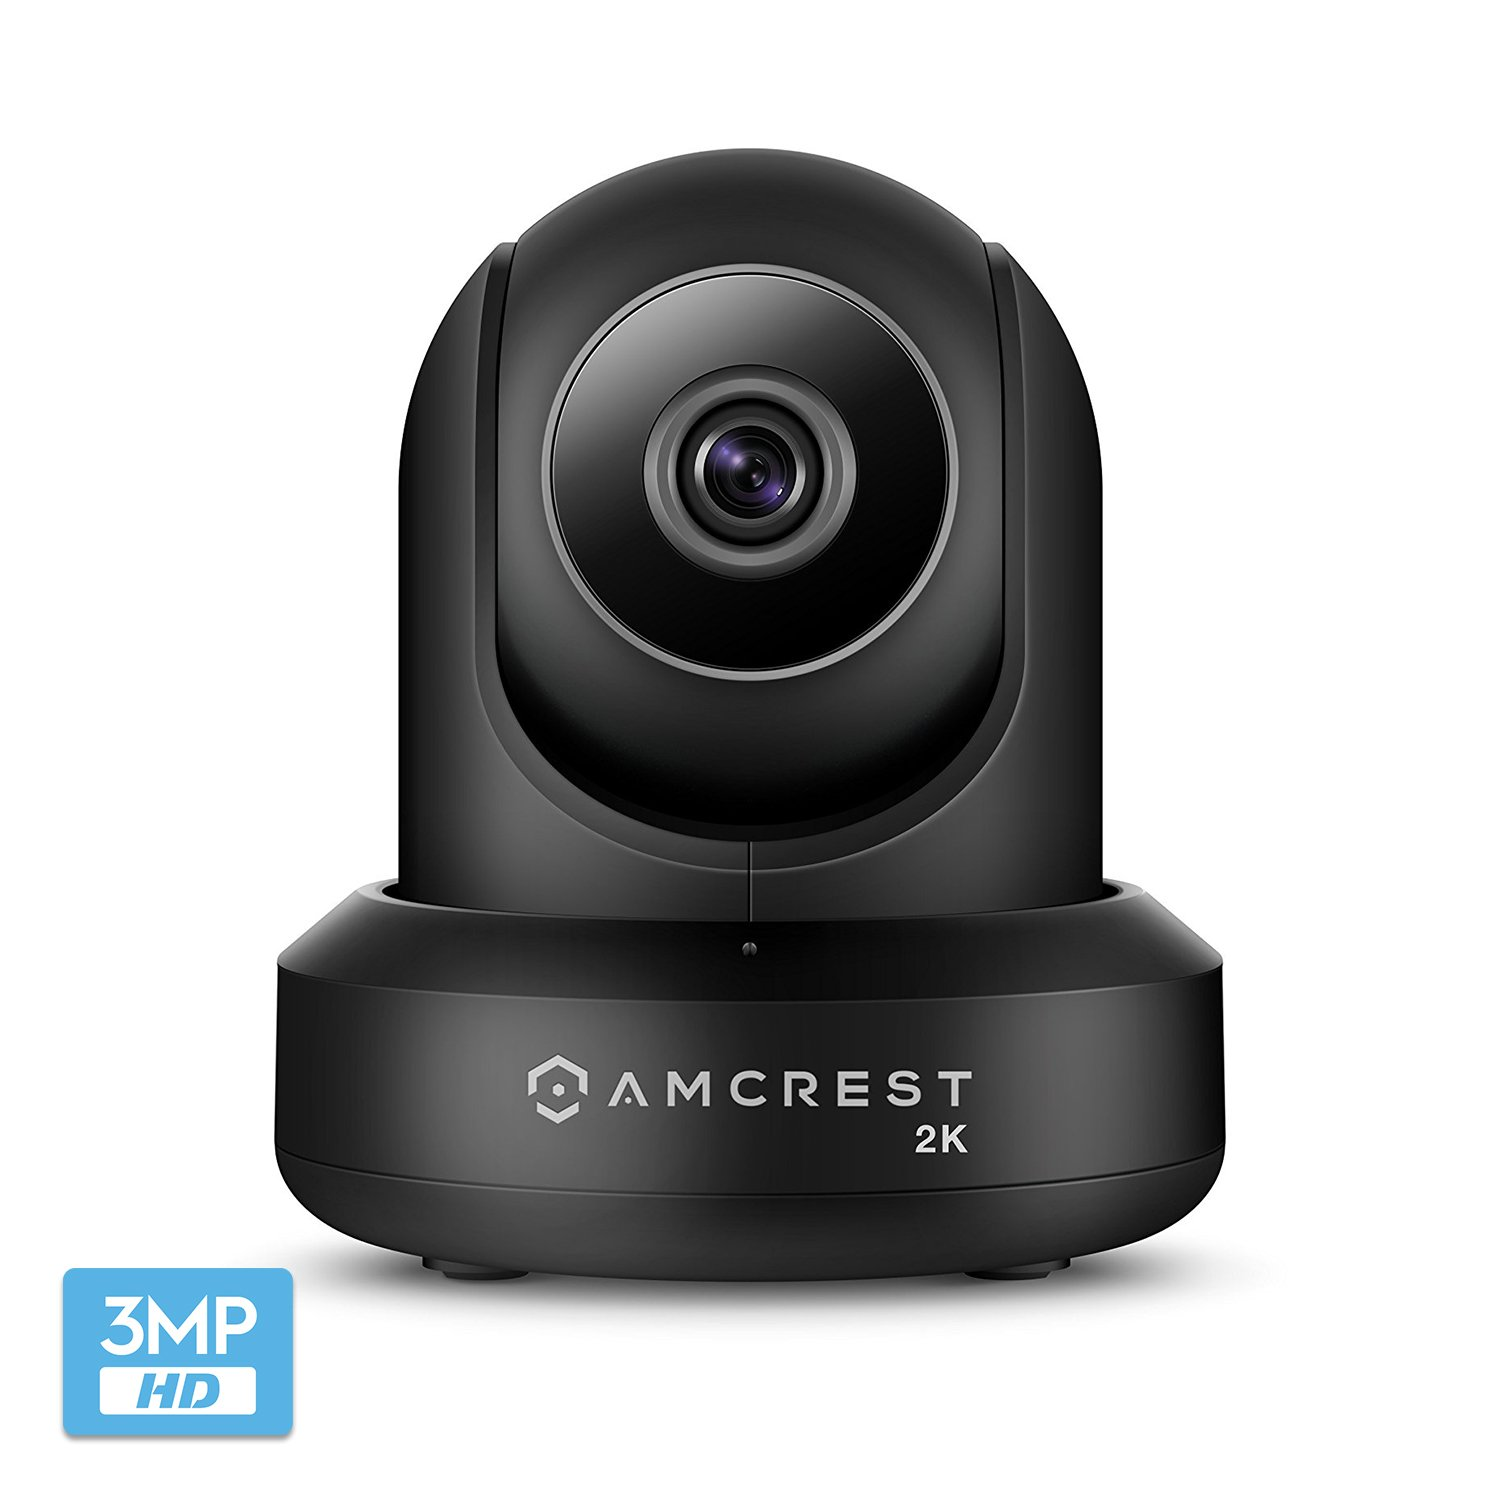 Amcrest UltraHD 2K WiFi Camera 3MP 2304TVL Dualband 5ghz 2.4ghz Indoor Pan Tilt Surveillance Wireless IP Camera Home Video Security System with IR Night Vision Two Way Talk IP3M 941B Black